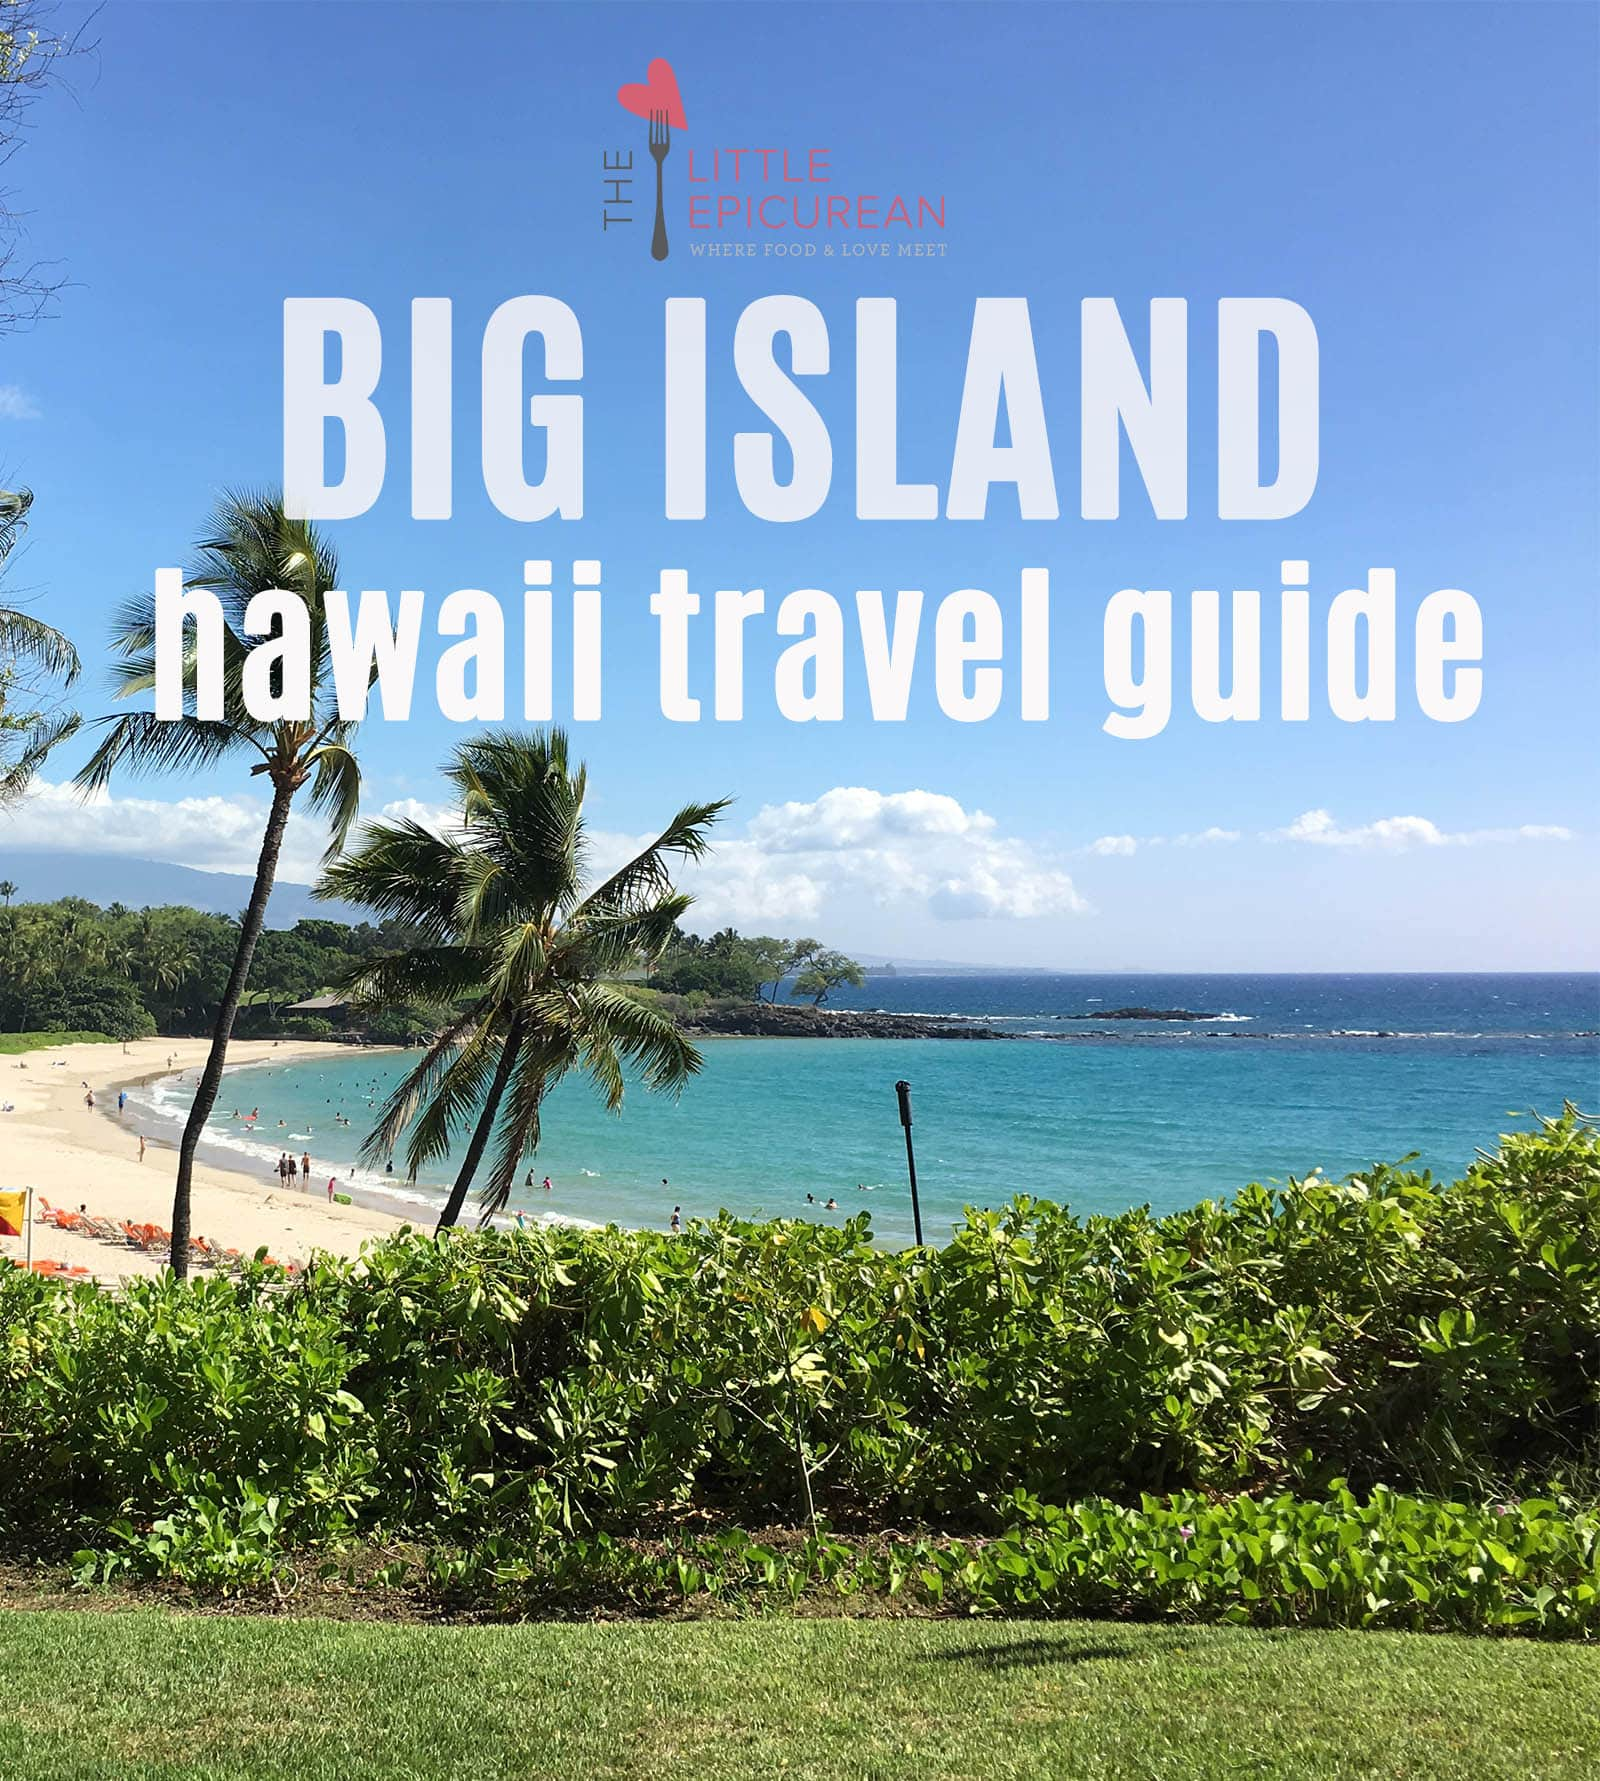 Hawaii's Big Island Vacation Travel Guide | Expedia - YouTube